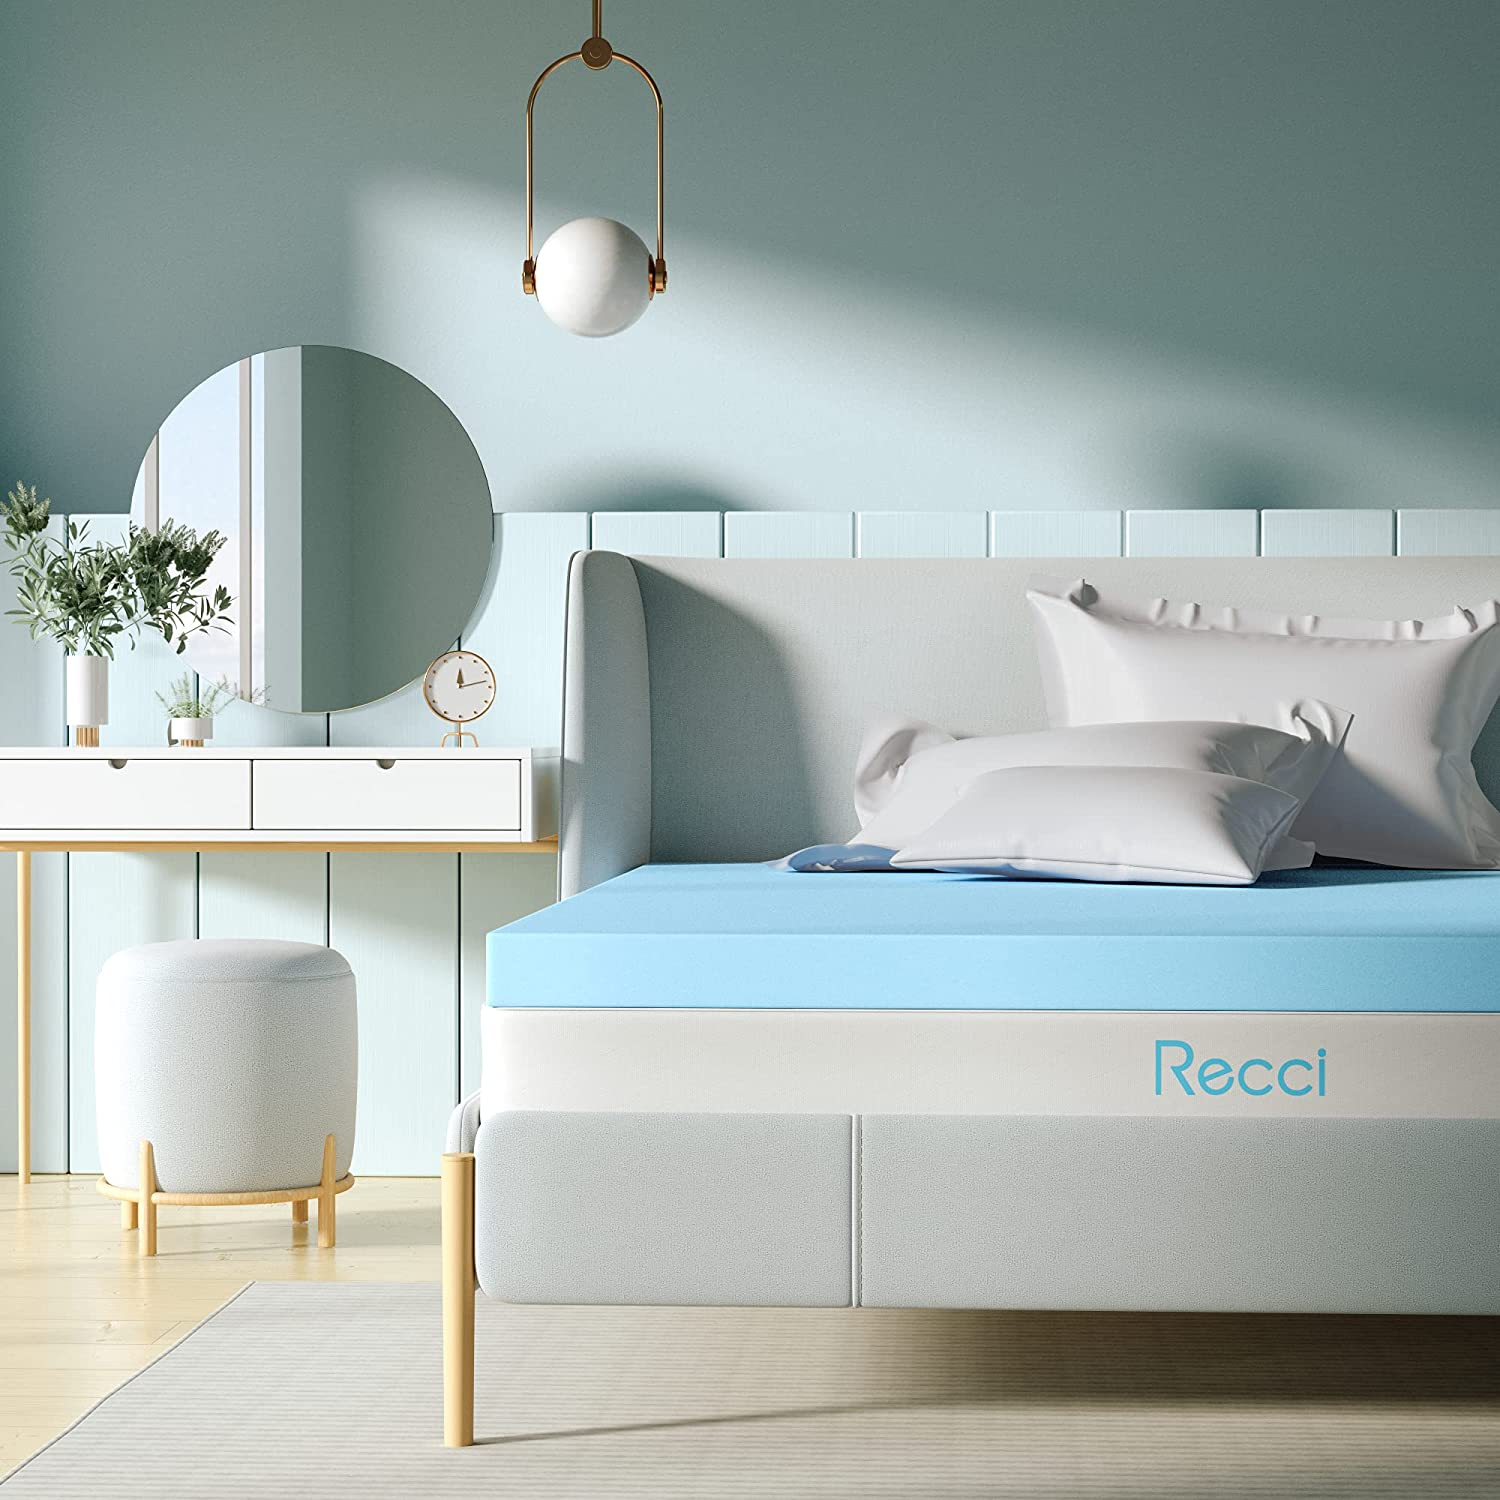 RECCI All stores are sold 2.5Inch Memory Foam Topper Mattress Queen New products world's highest quality popular